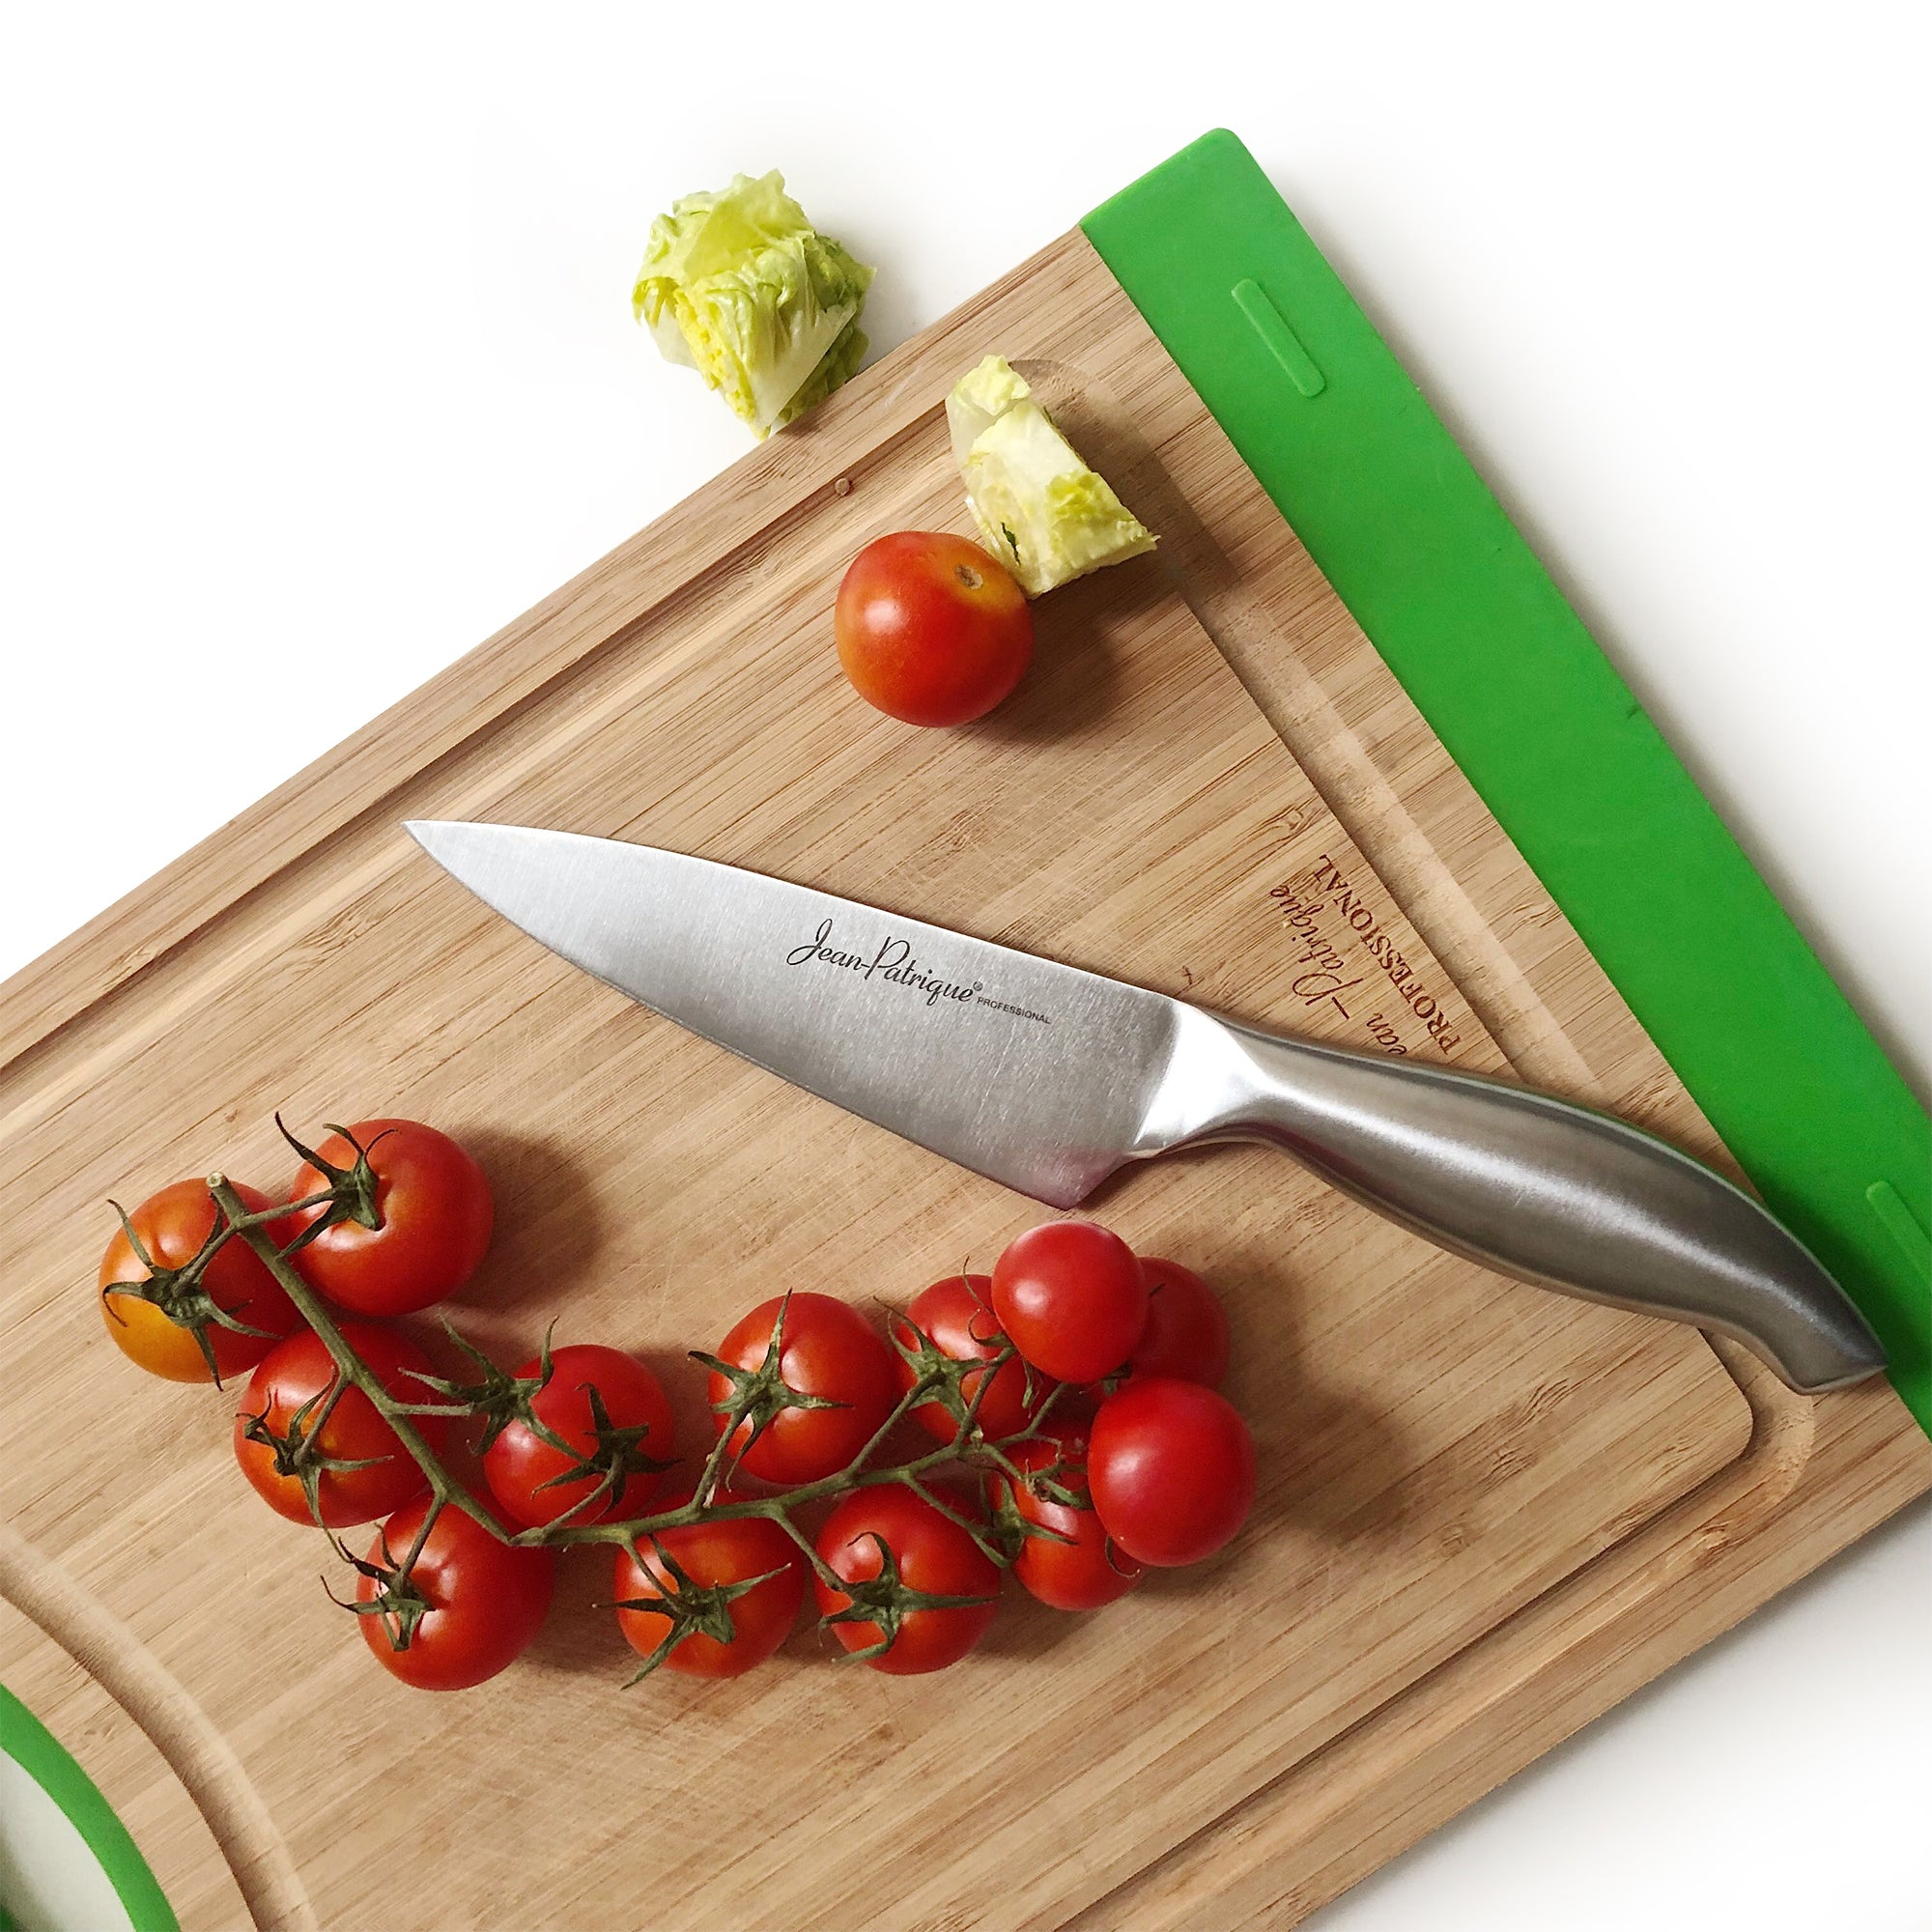 Chopaholic Professional Chef's Knife - 6 Inch